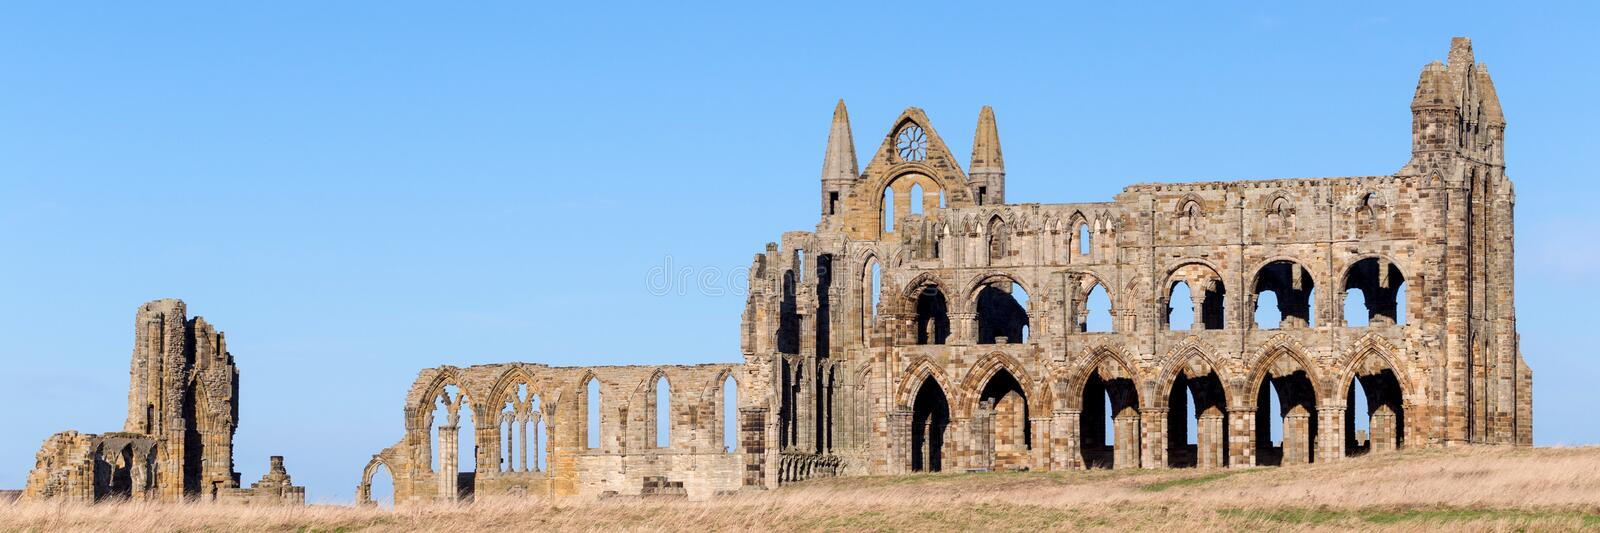 Whitby Abbey-Panorama lizenzfreie stockfotos